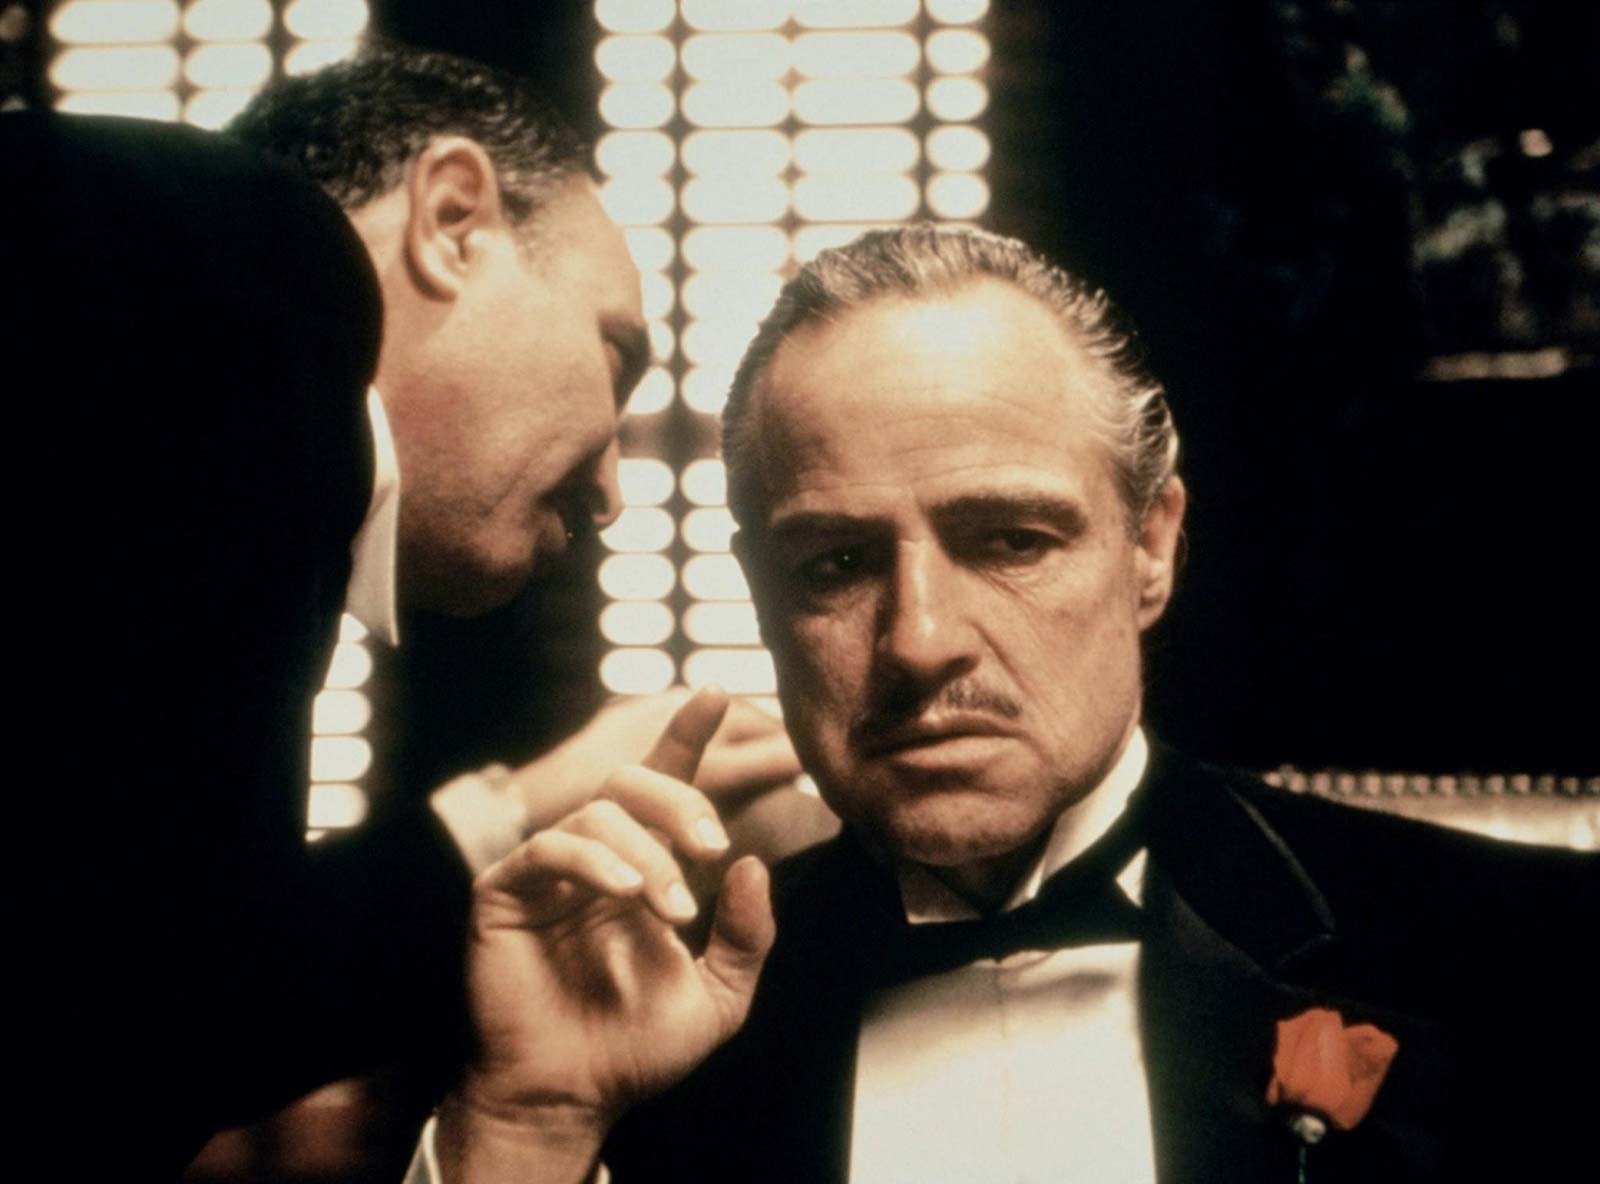 Don Vito Corleone, a man that has no time for romance in his life, played by Marlon Brando